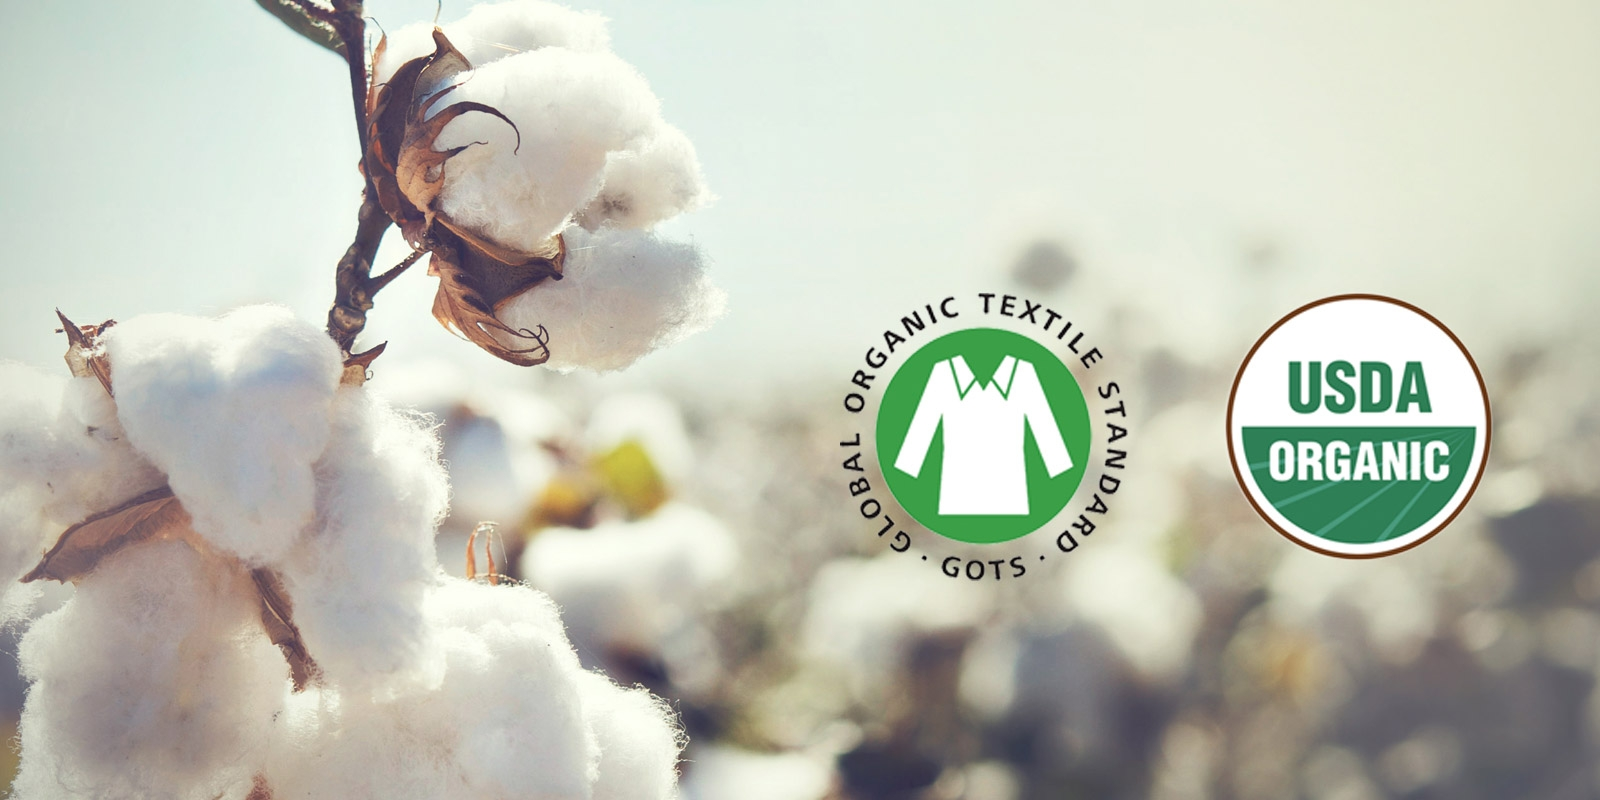 USDA Certified Organic Cotton vs GOTS Certified Organic Cotton